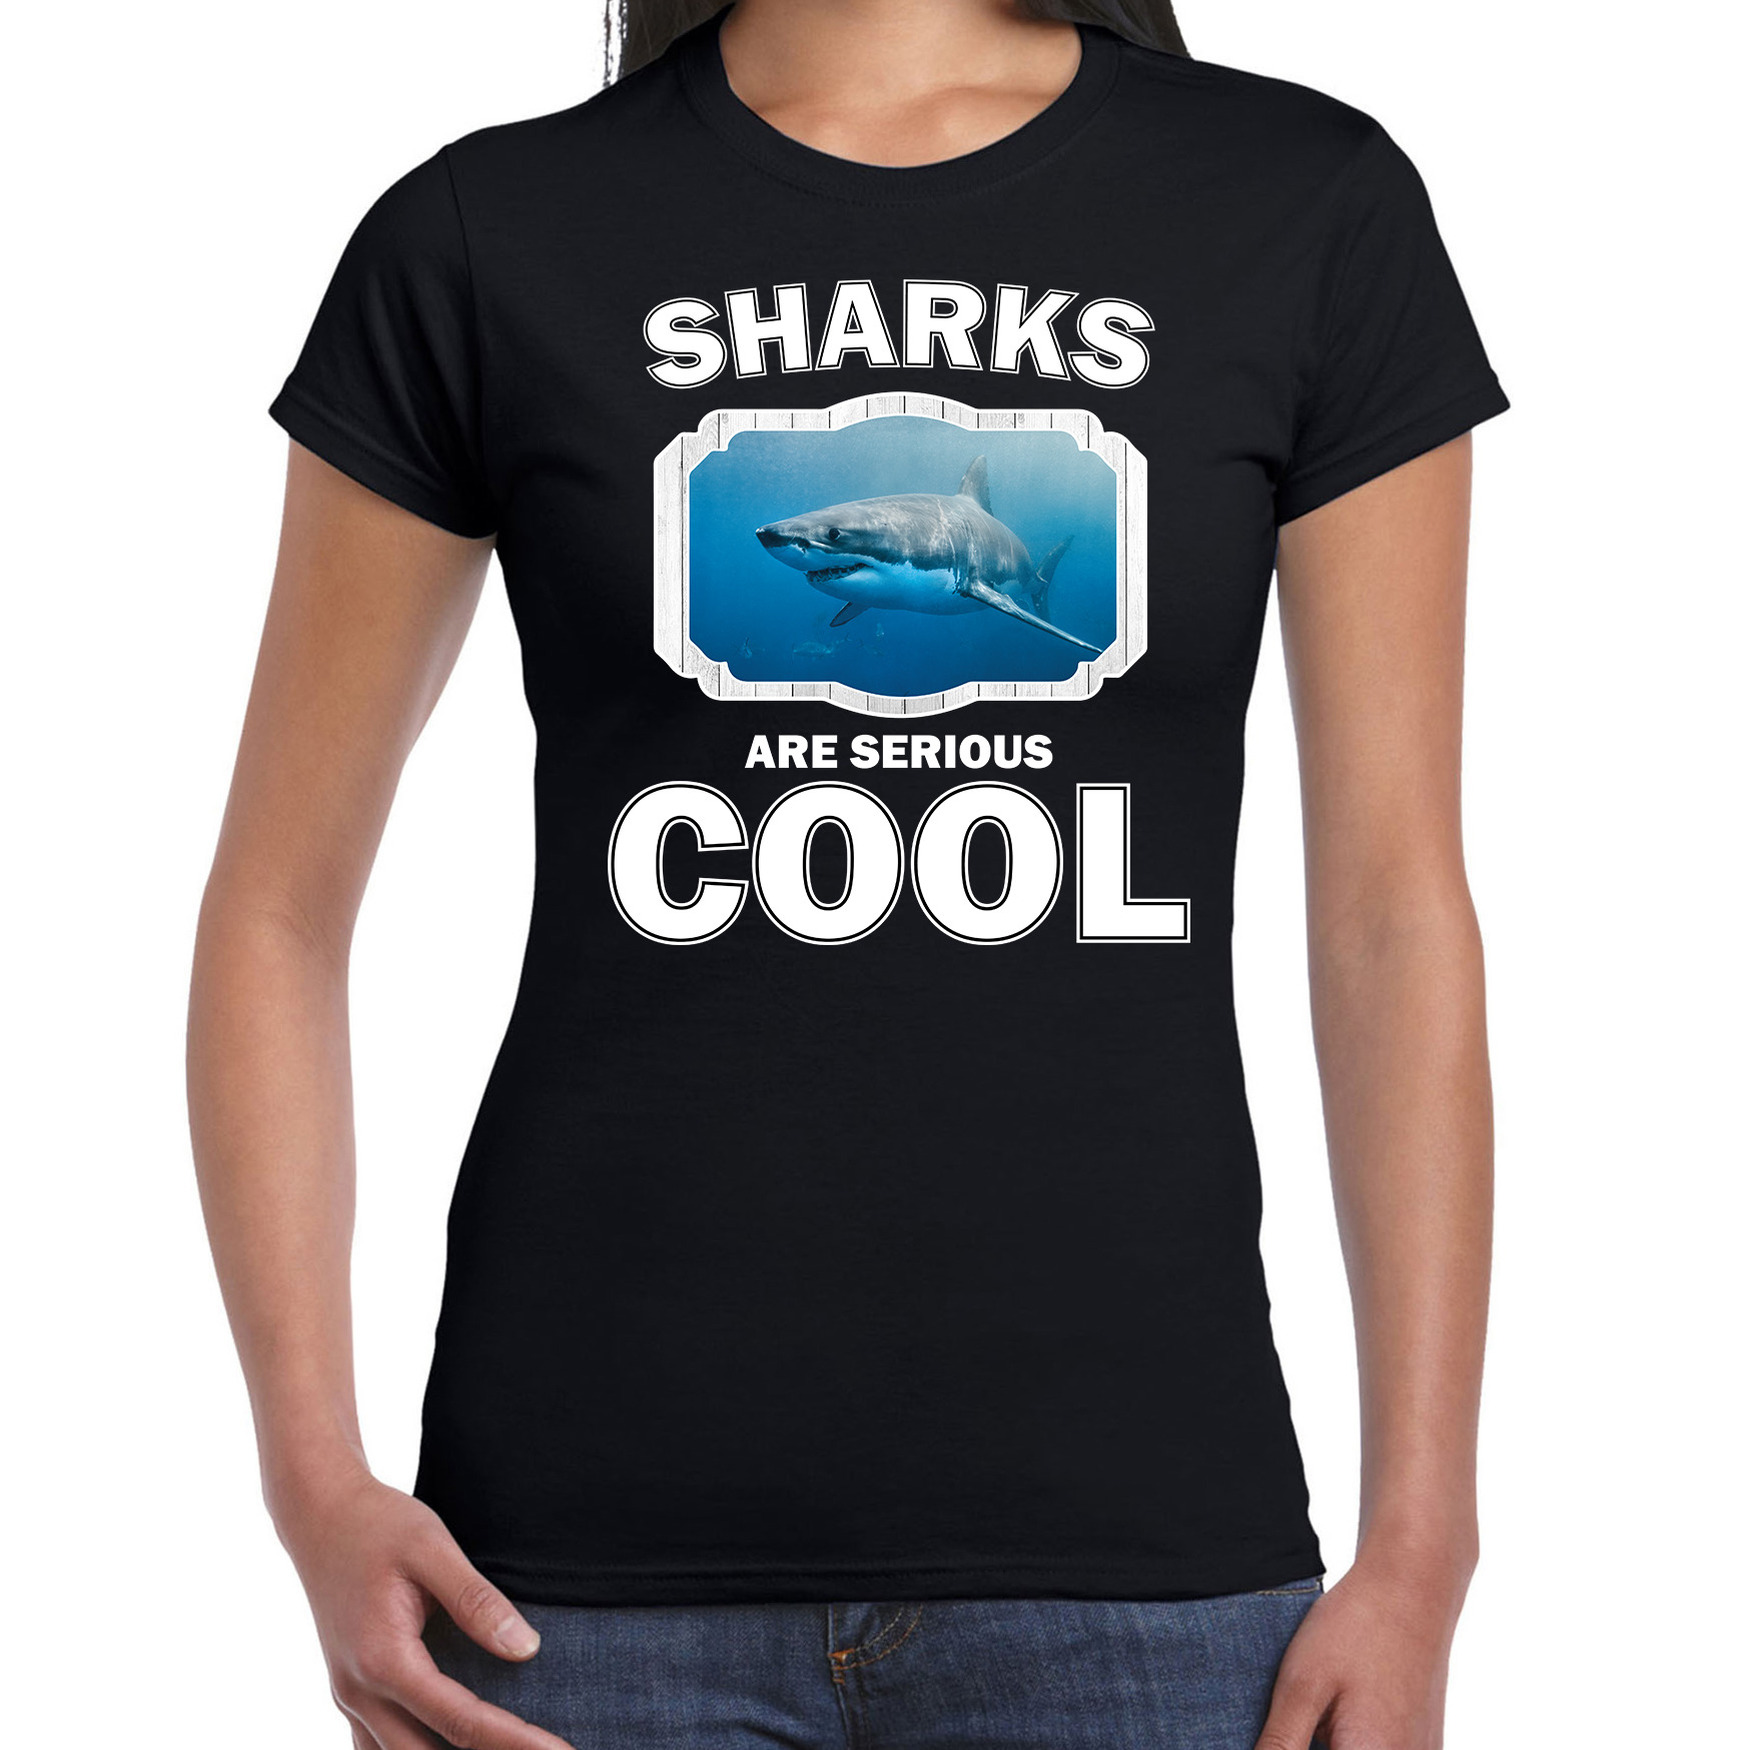 T-shirt sharks are serious cool zwart dames - haaien/ haai shirt